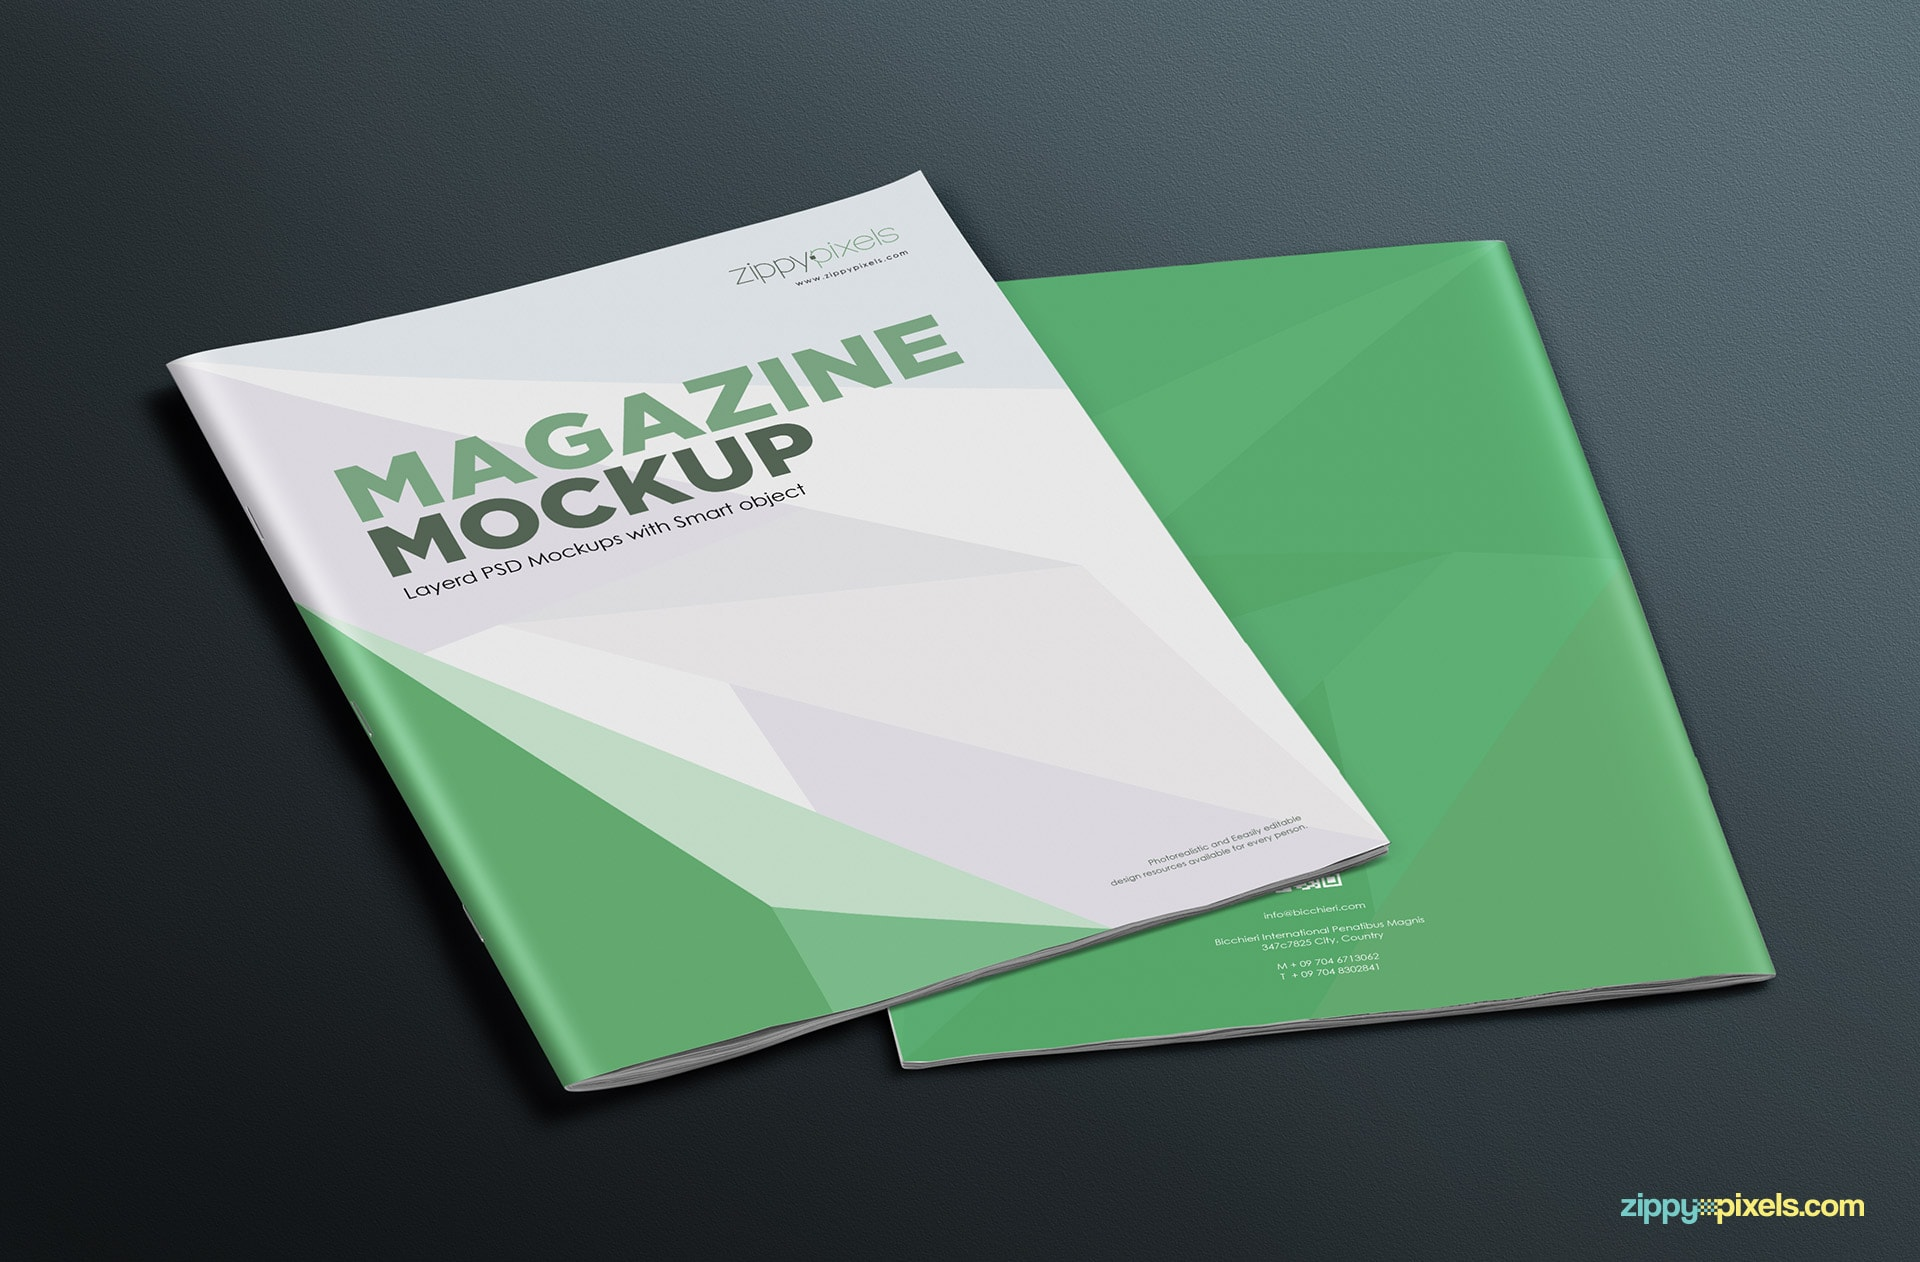 awesome magazine mock-up to display your work